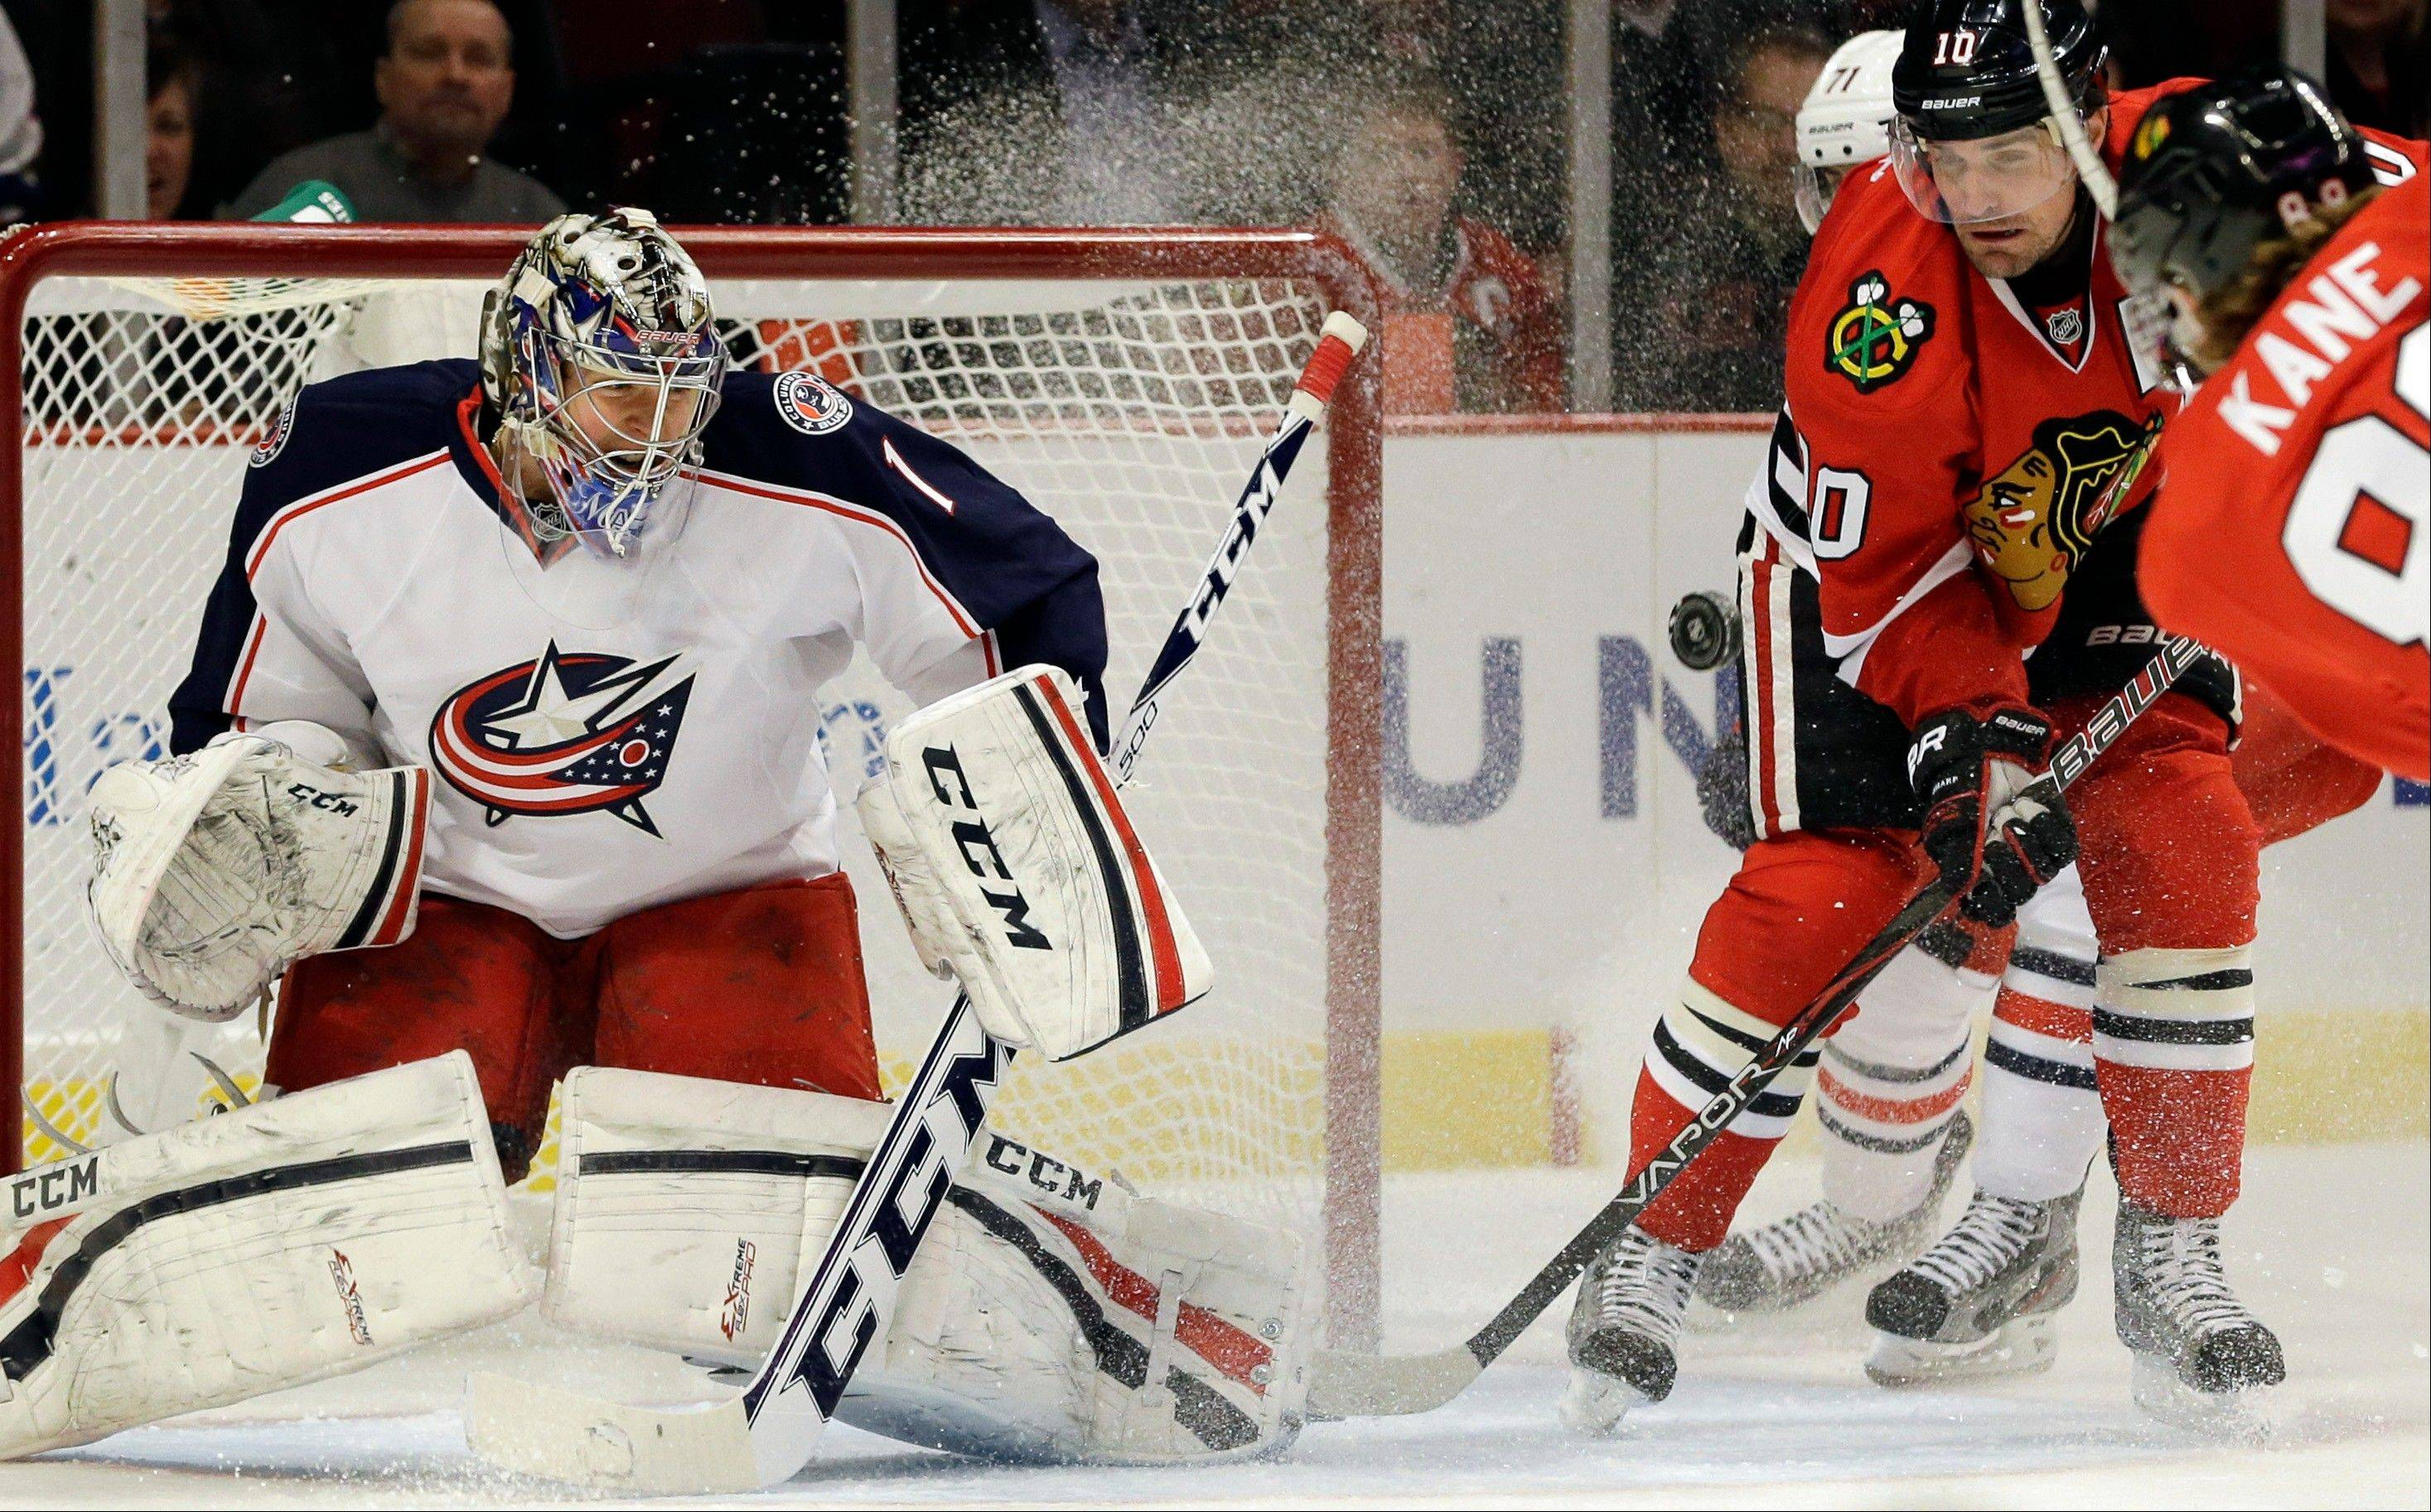 Columbus Blue Jackets goalie Steve Mason blocks a shot by Chicago Blackhawks' Patrick Kane during the second period .